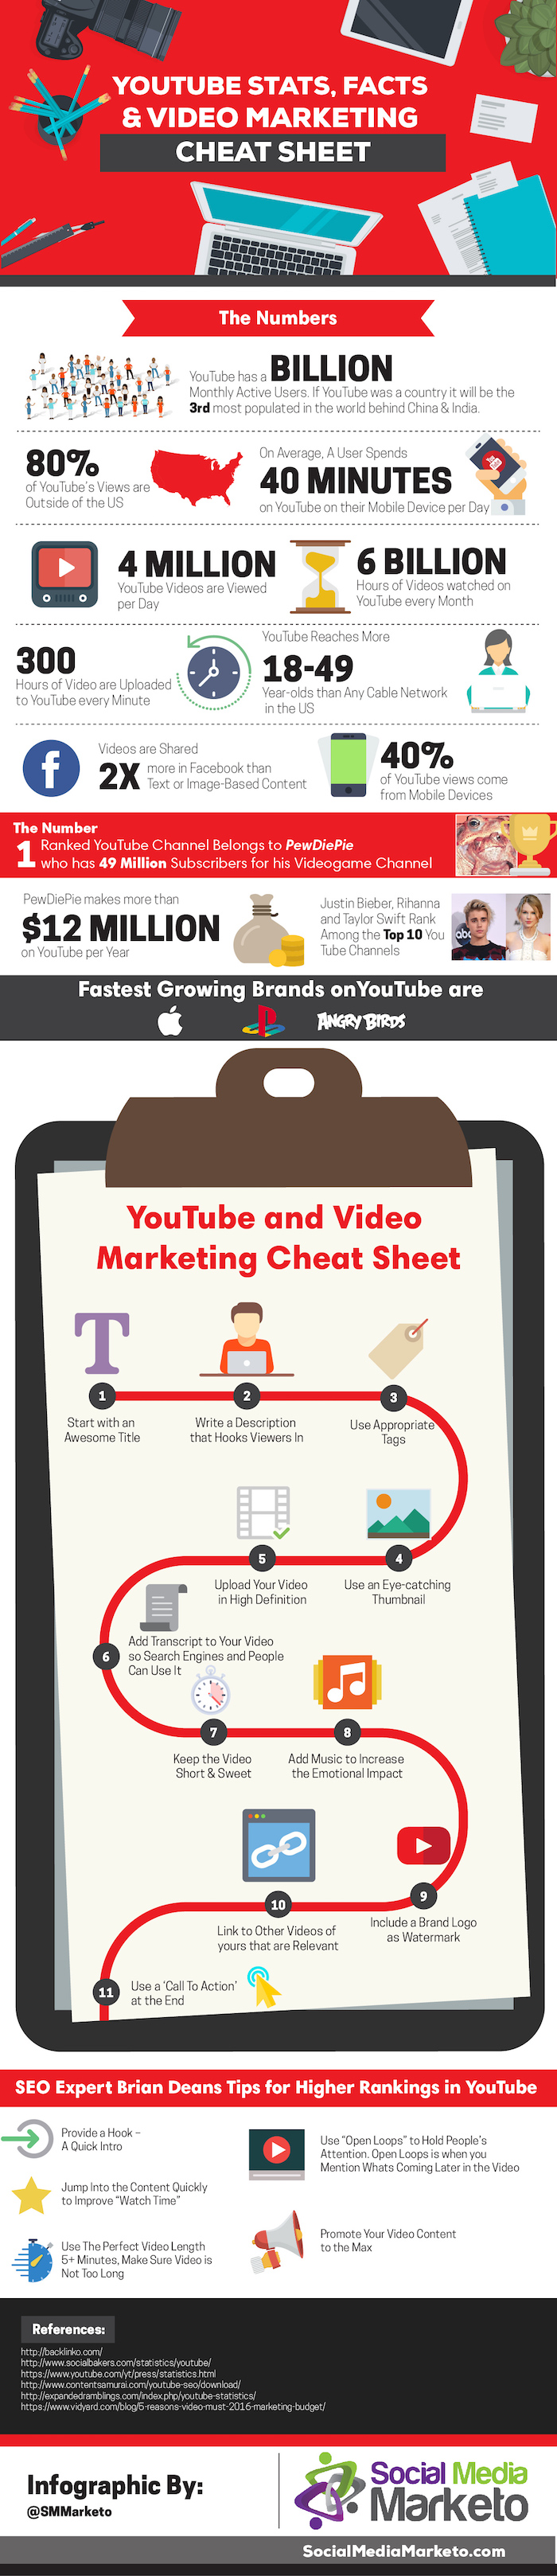 Youtube Stats Facts Video Marketing Cheat Sheet Infographic Gaia Venture Strategy Marketing